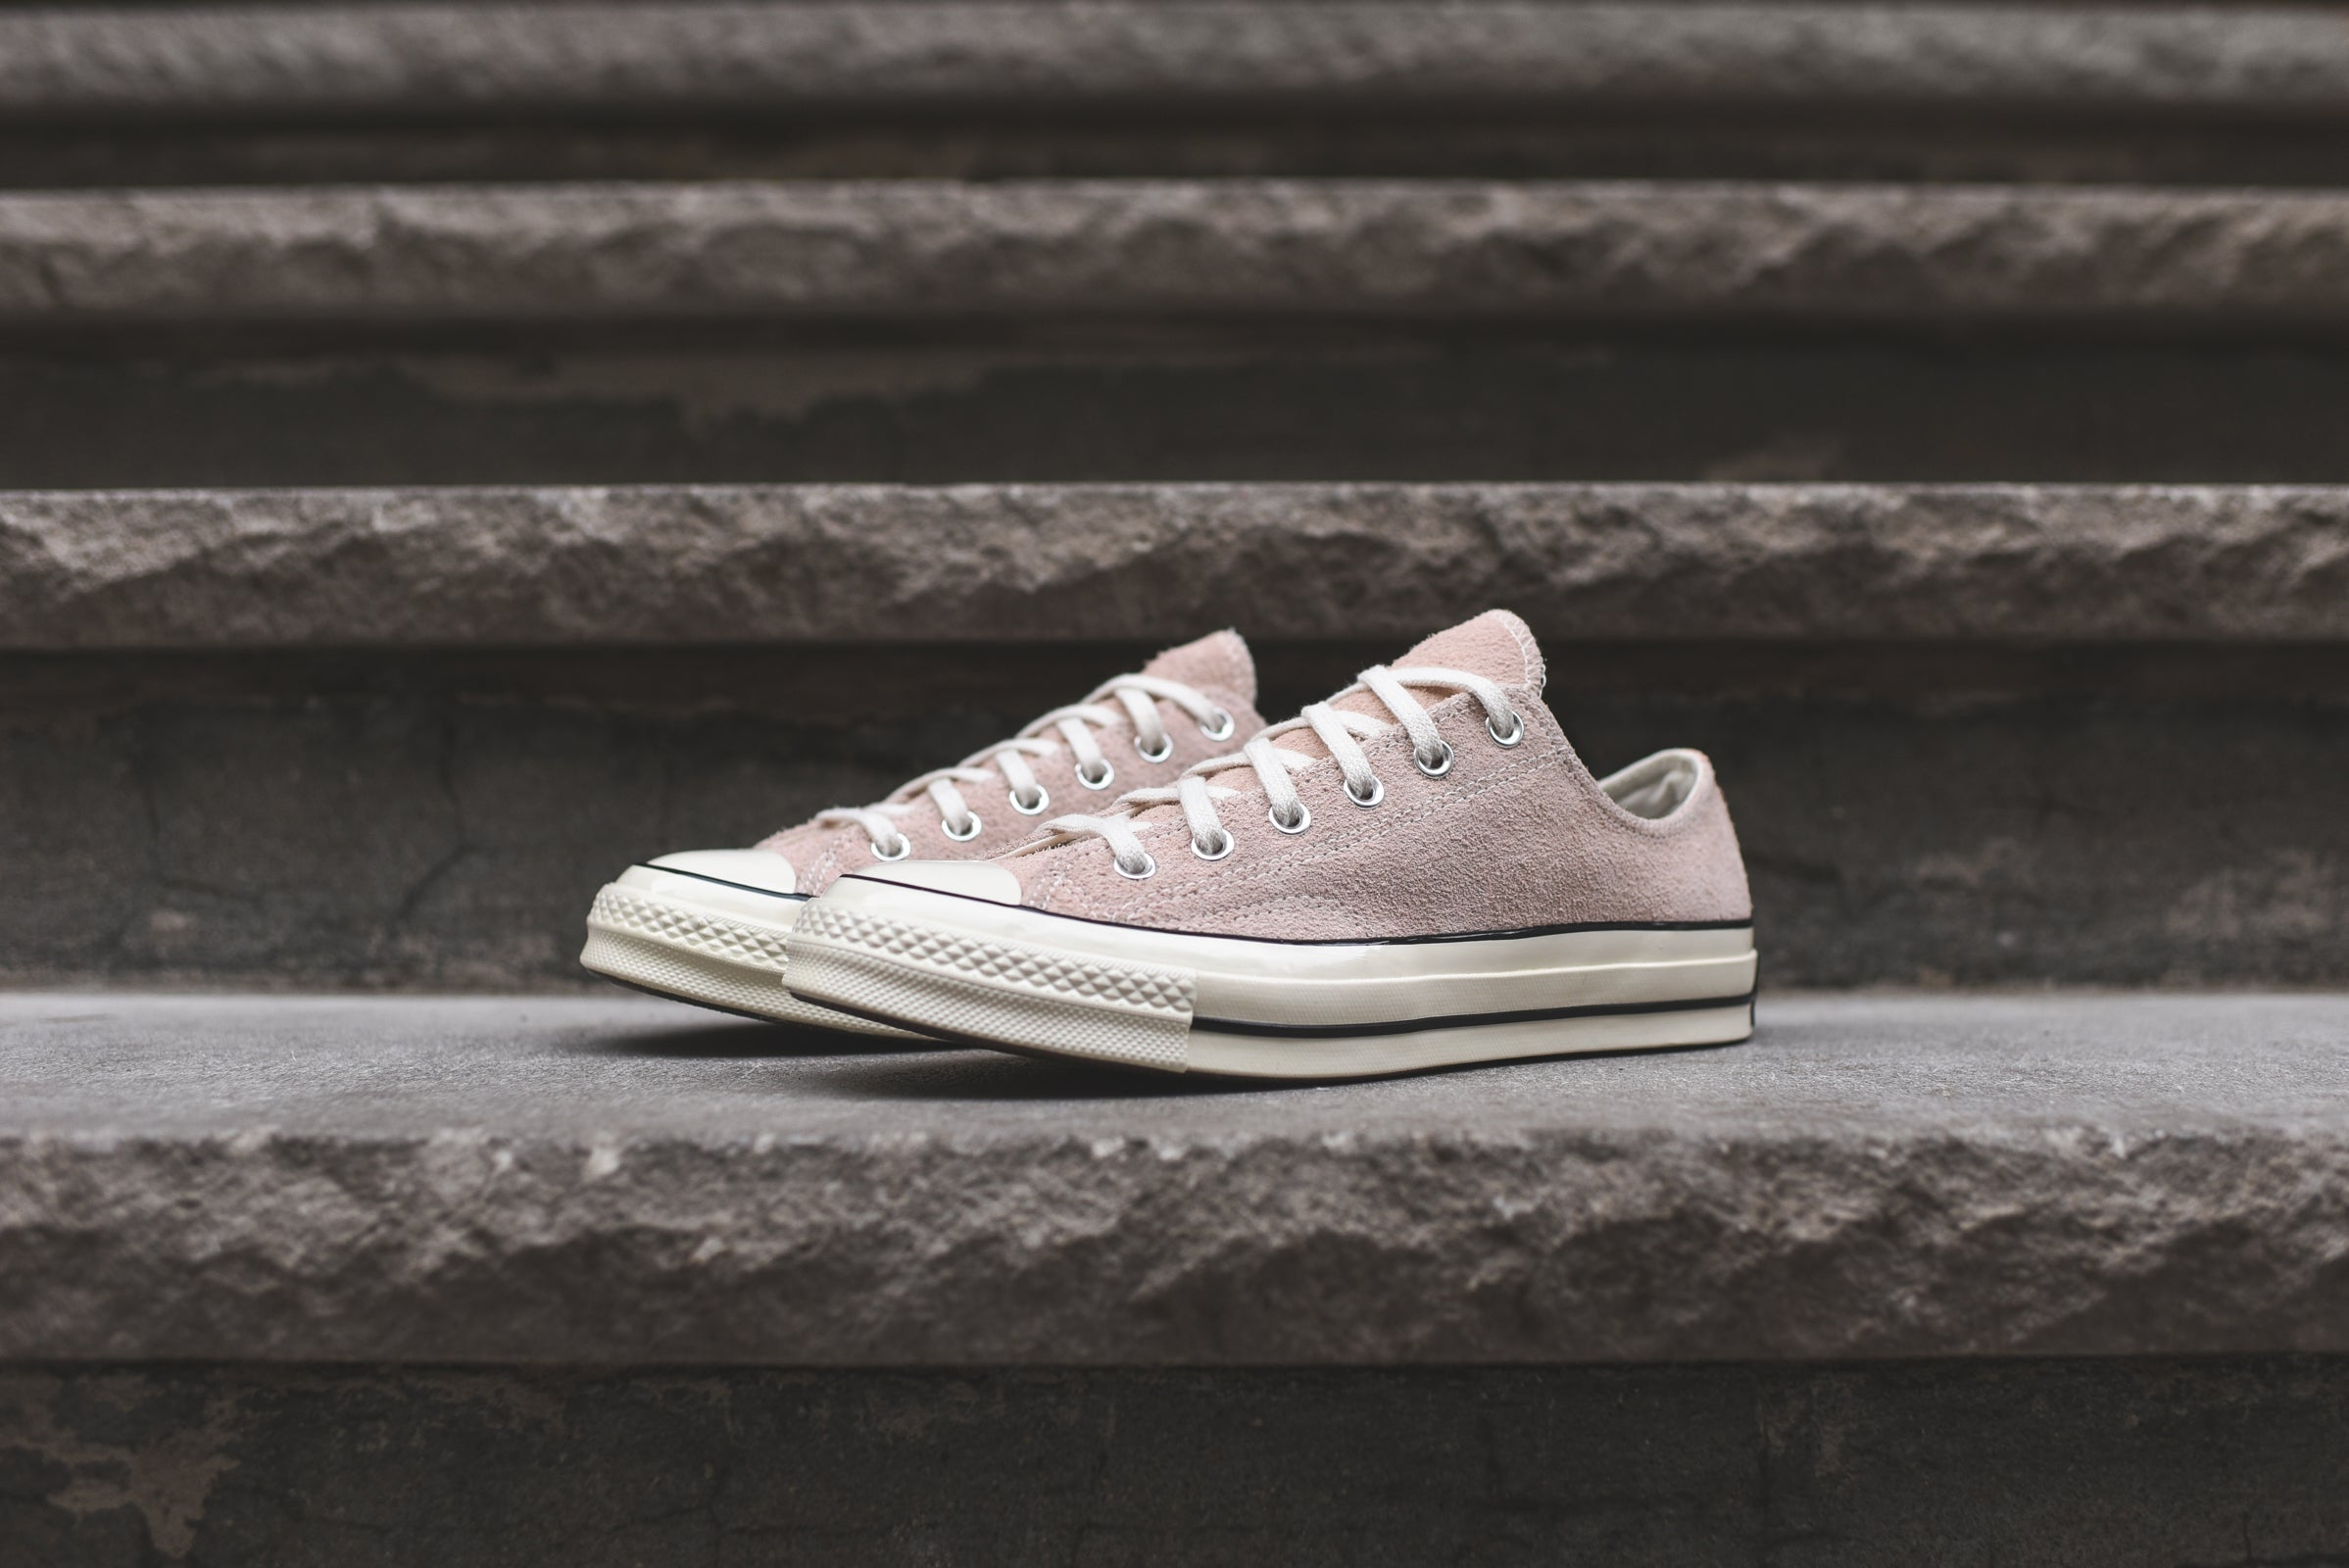 Converse Chuck Taylor All Star Low 1970 Vintage Ox - Dusk Pink